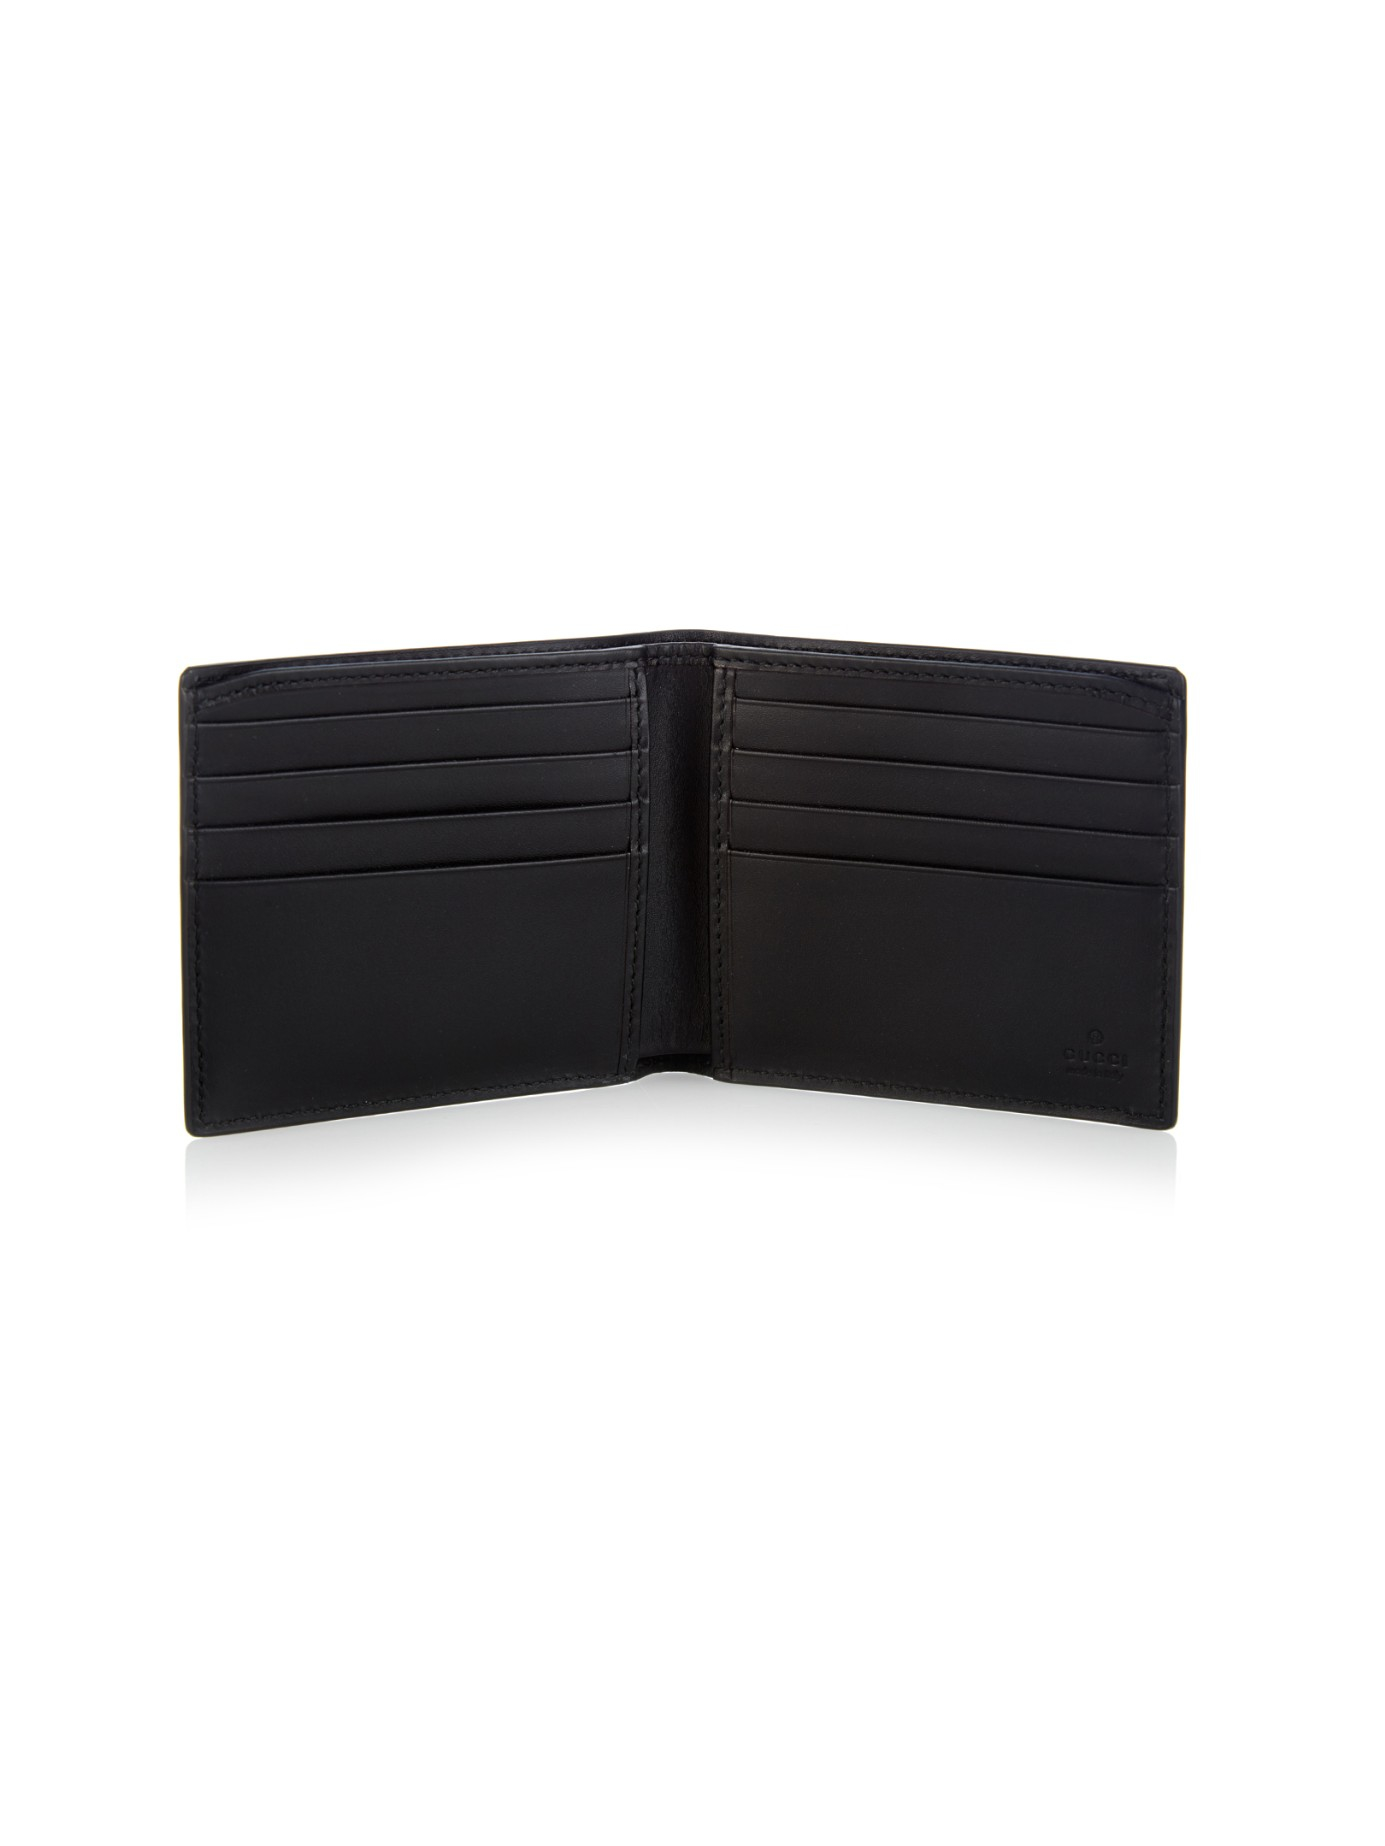 77dad5051d05 Gucci Web Leather Wallet